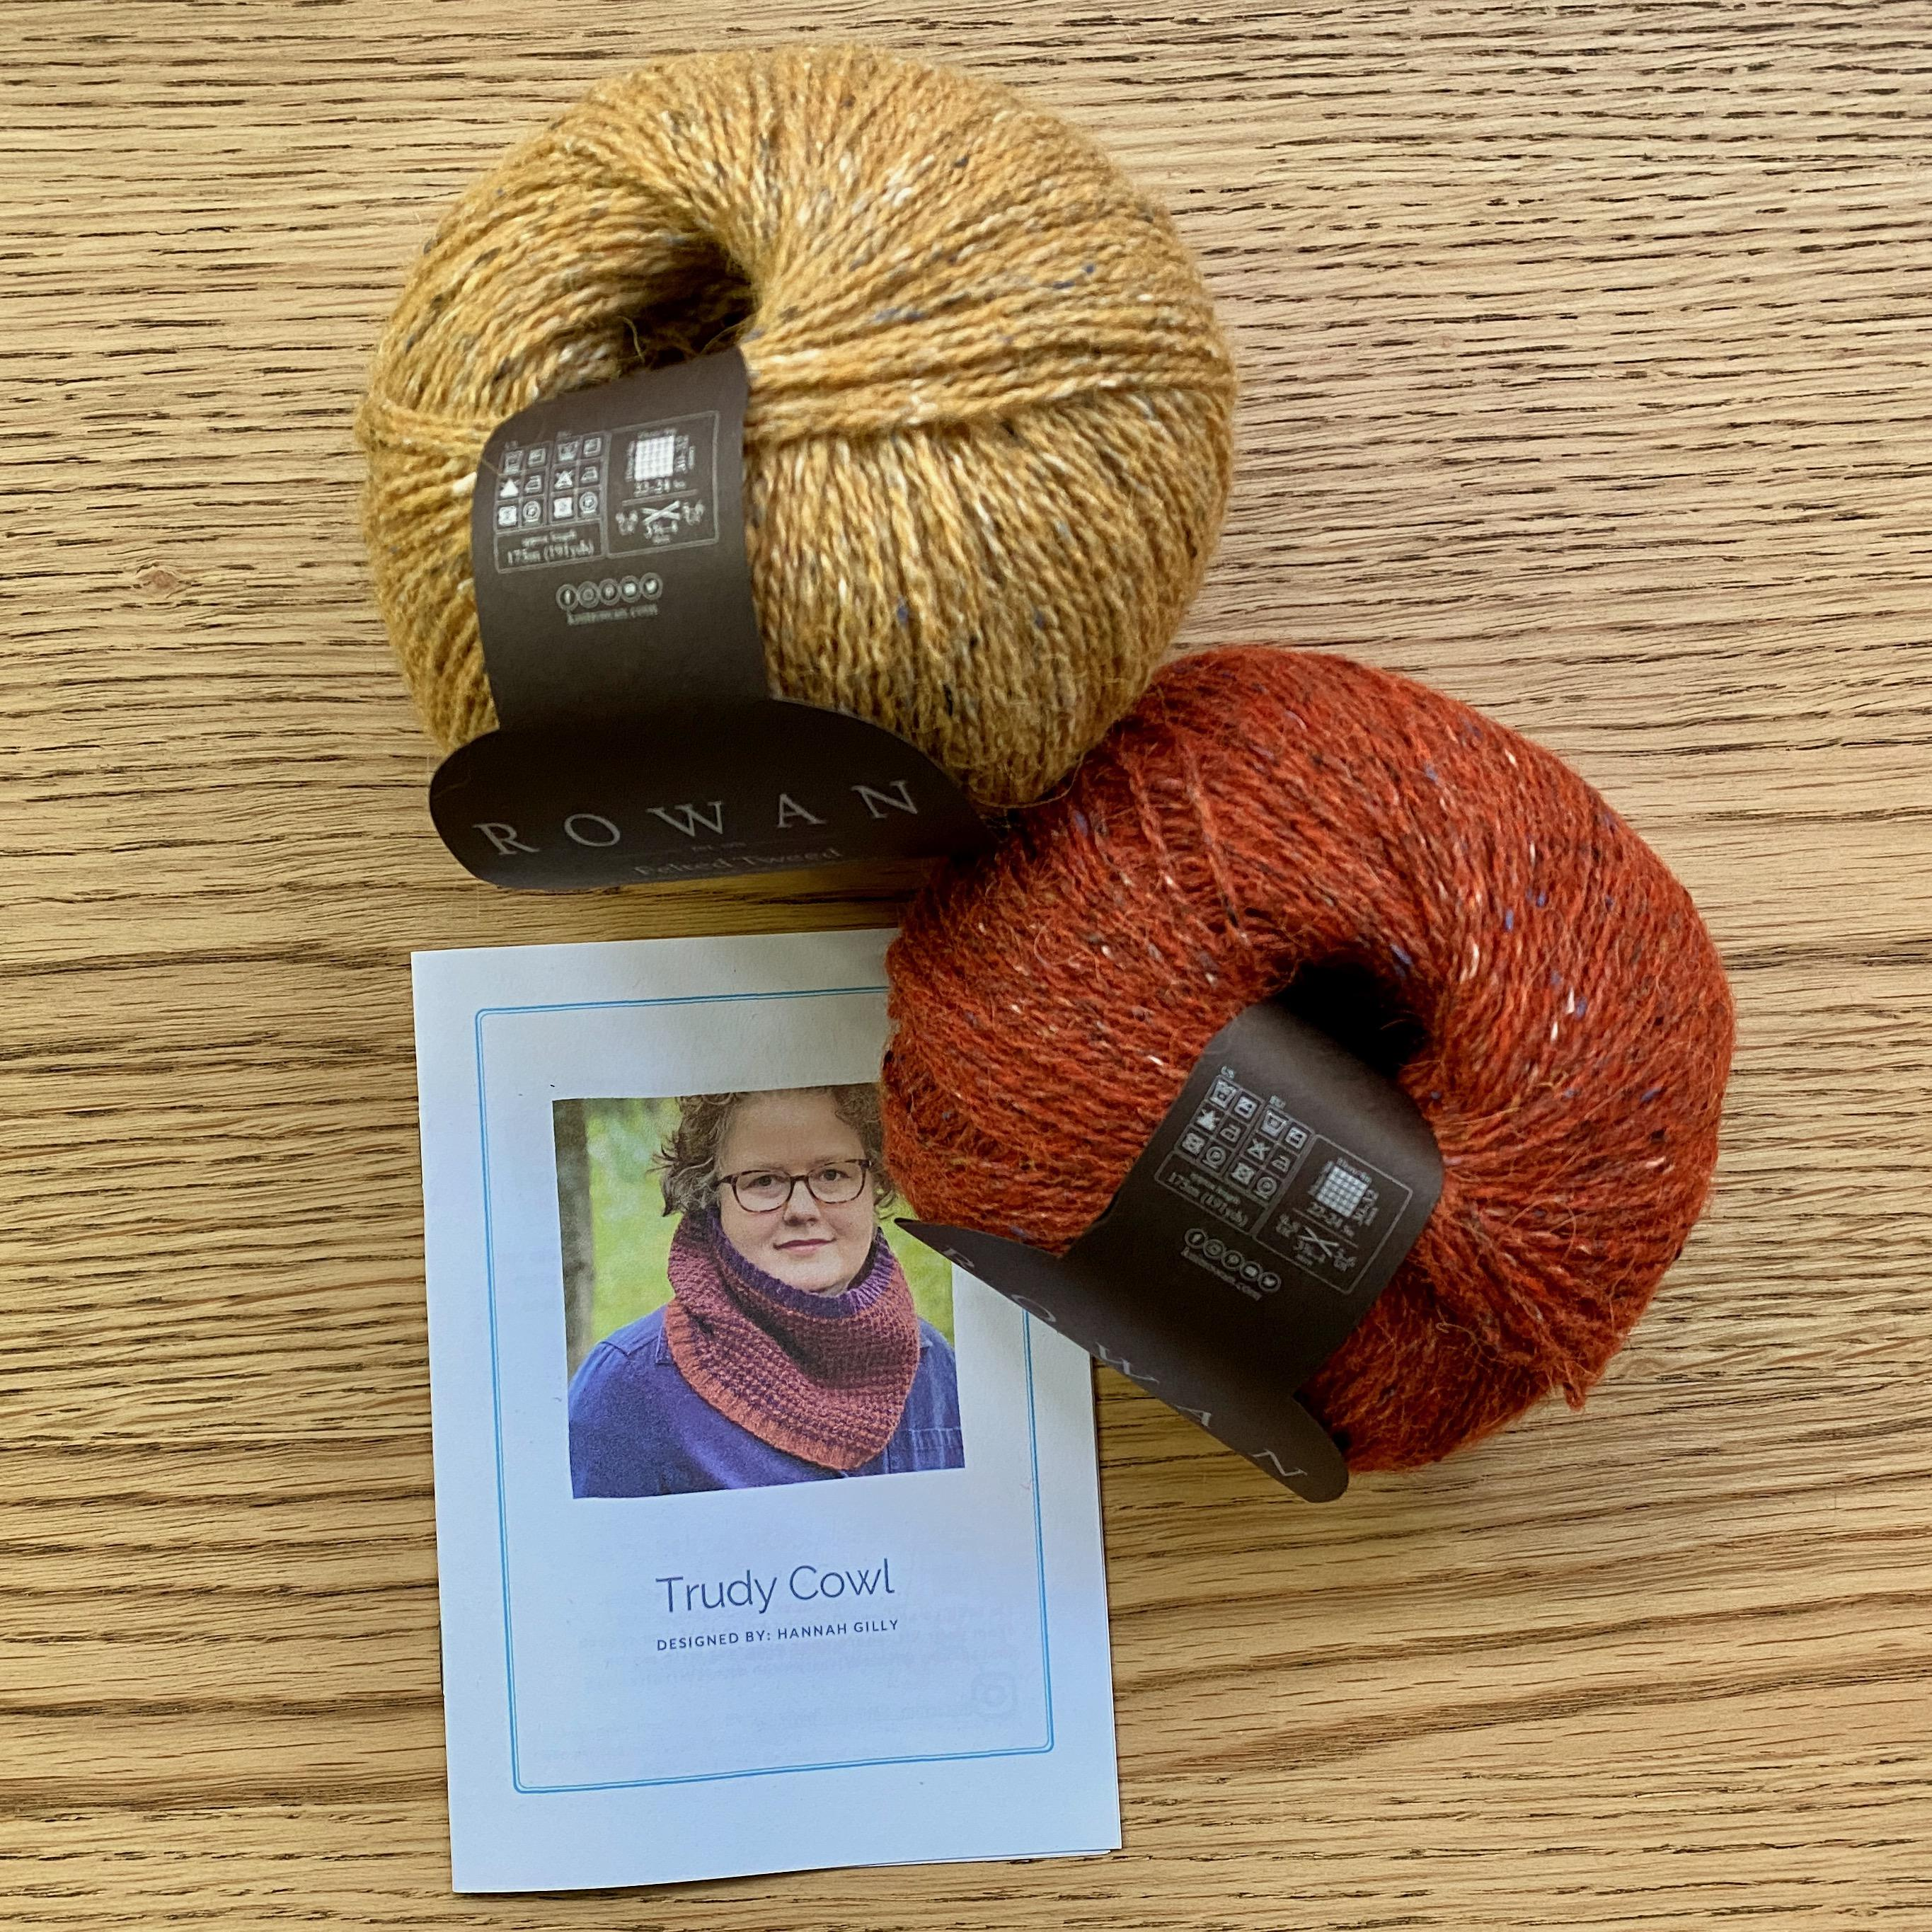 Trudy Cowl Knitting pattern on wooden table with 2 balls of yarn - cumin yellow and Ginger orange